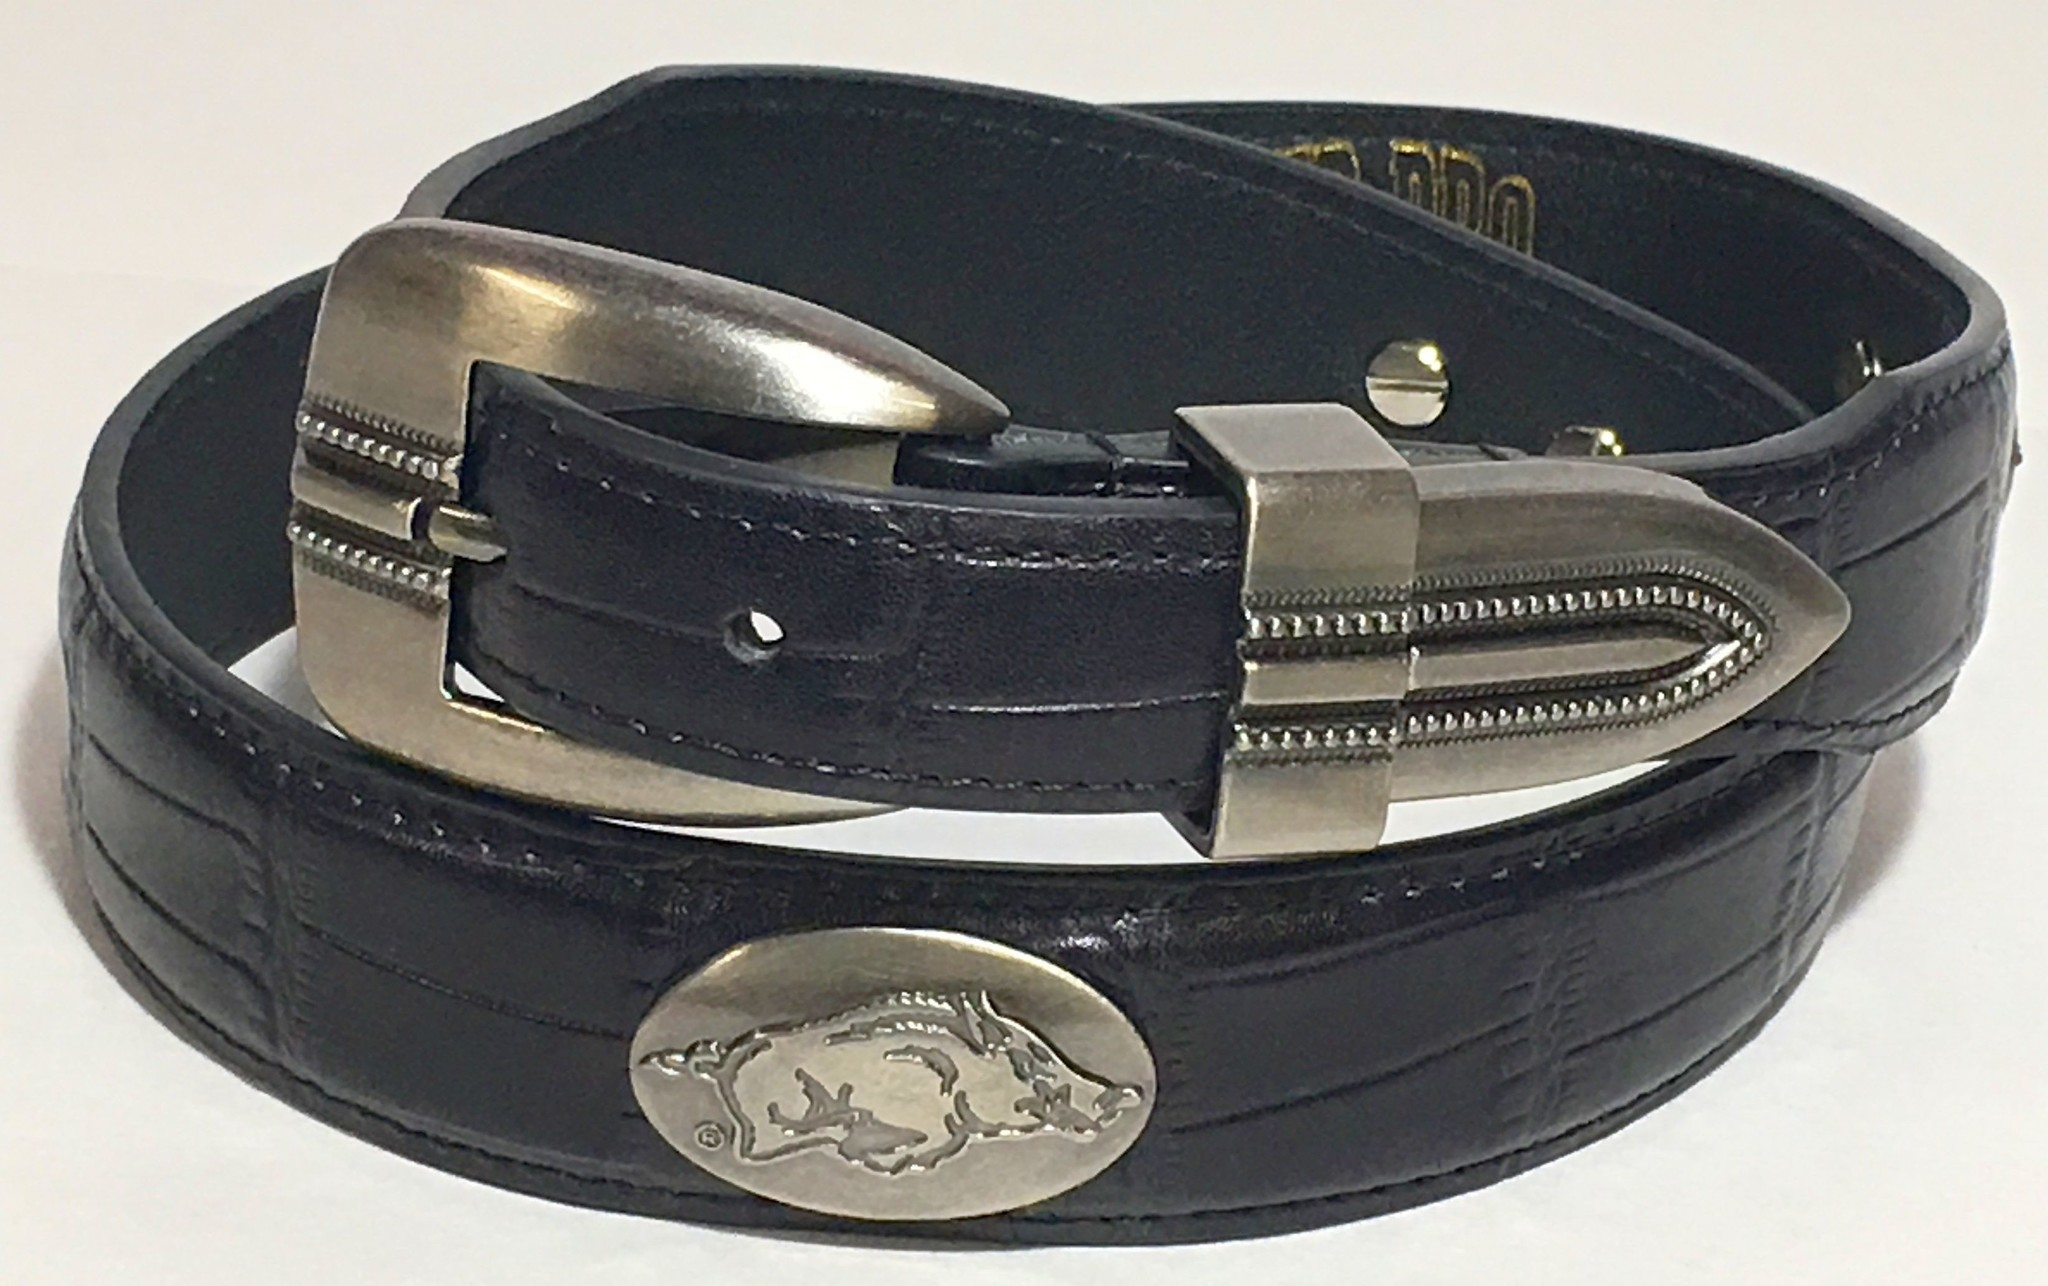 Arkansas Razorback Black Crock Leather Concho Belt